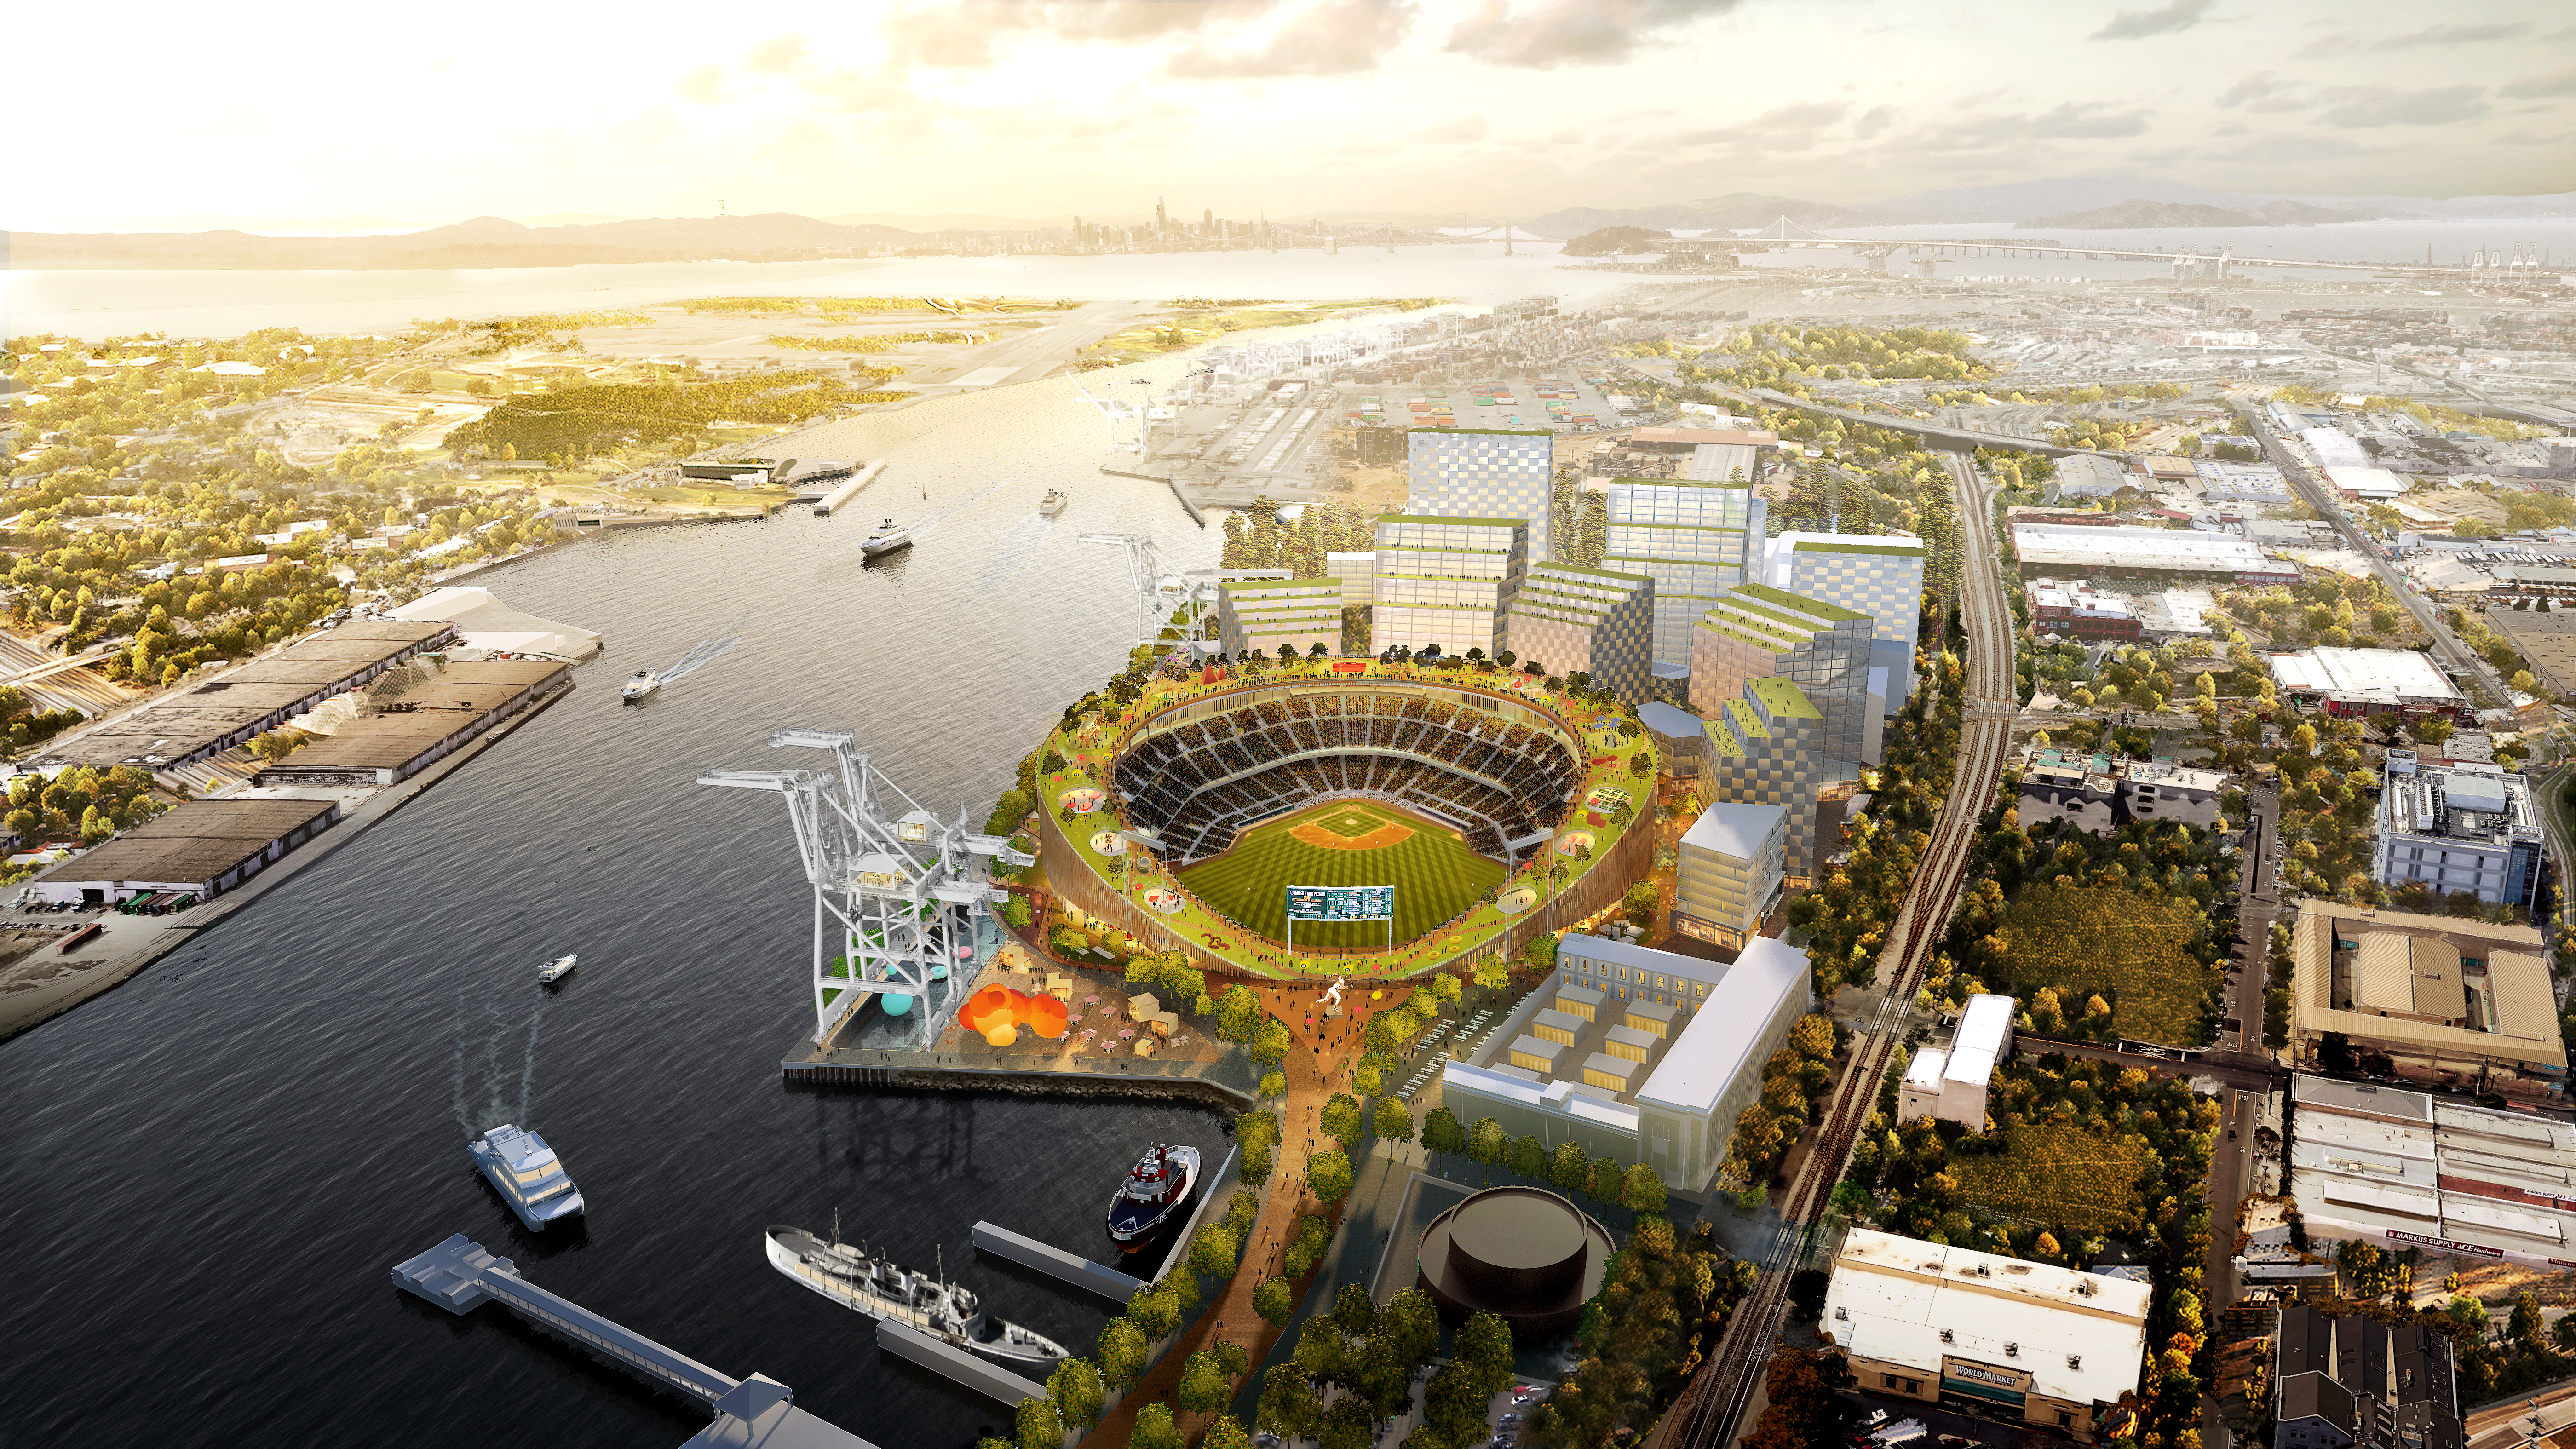 Artistic rendering of a modern, open-roof ballpark surrounded by trees, buildings, and a harbor.